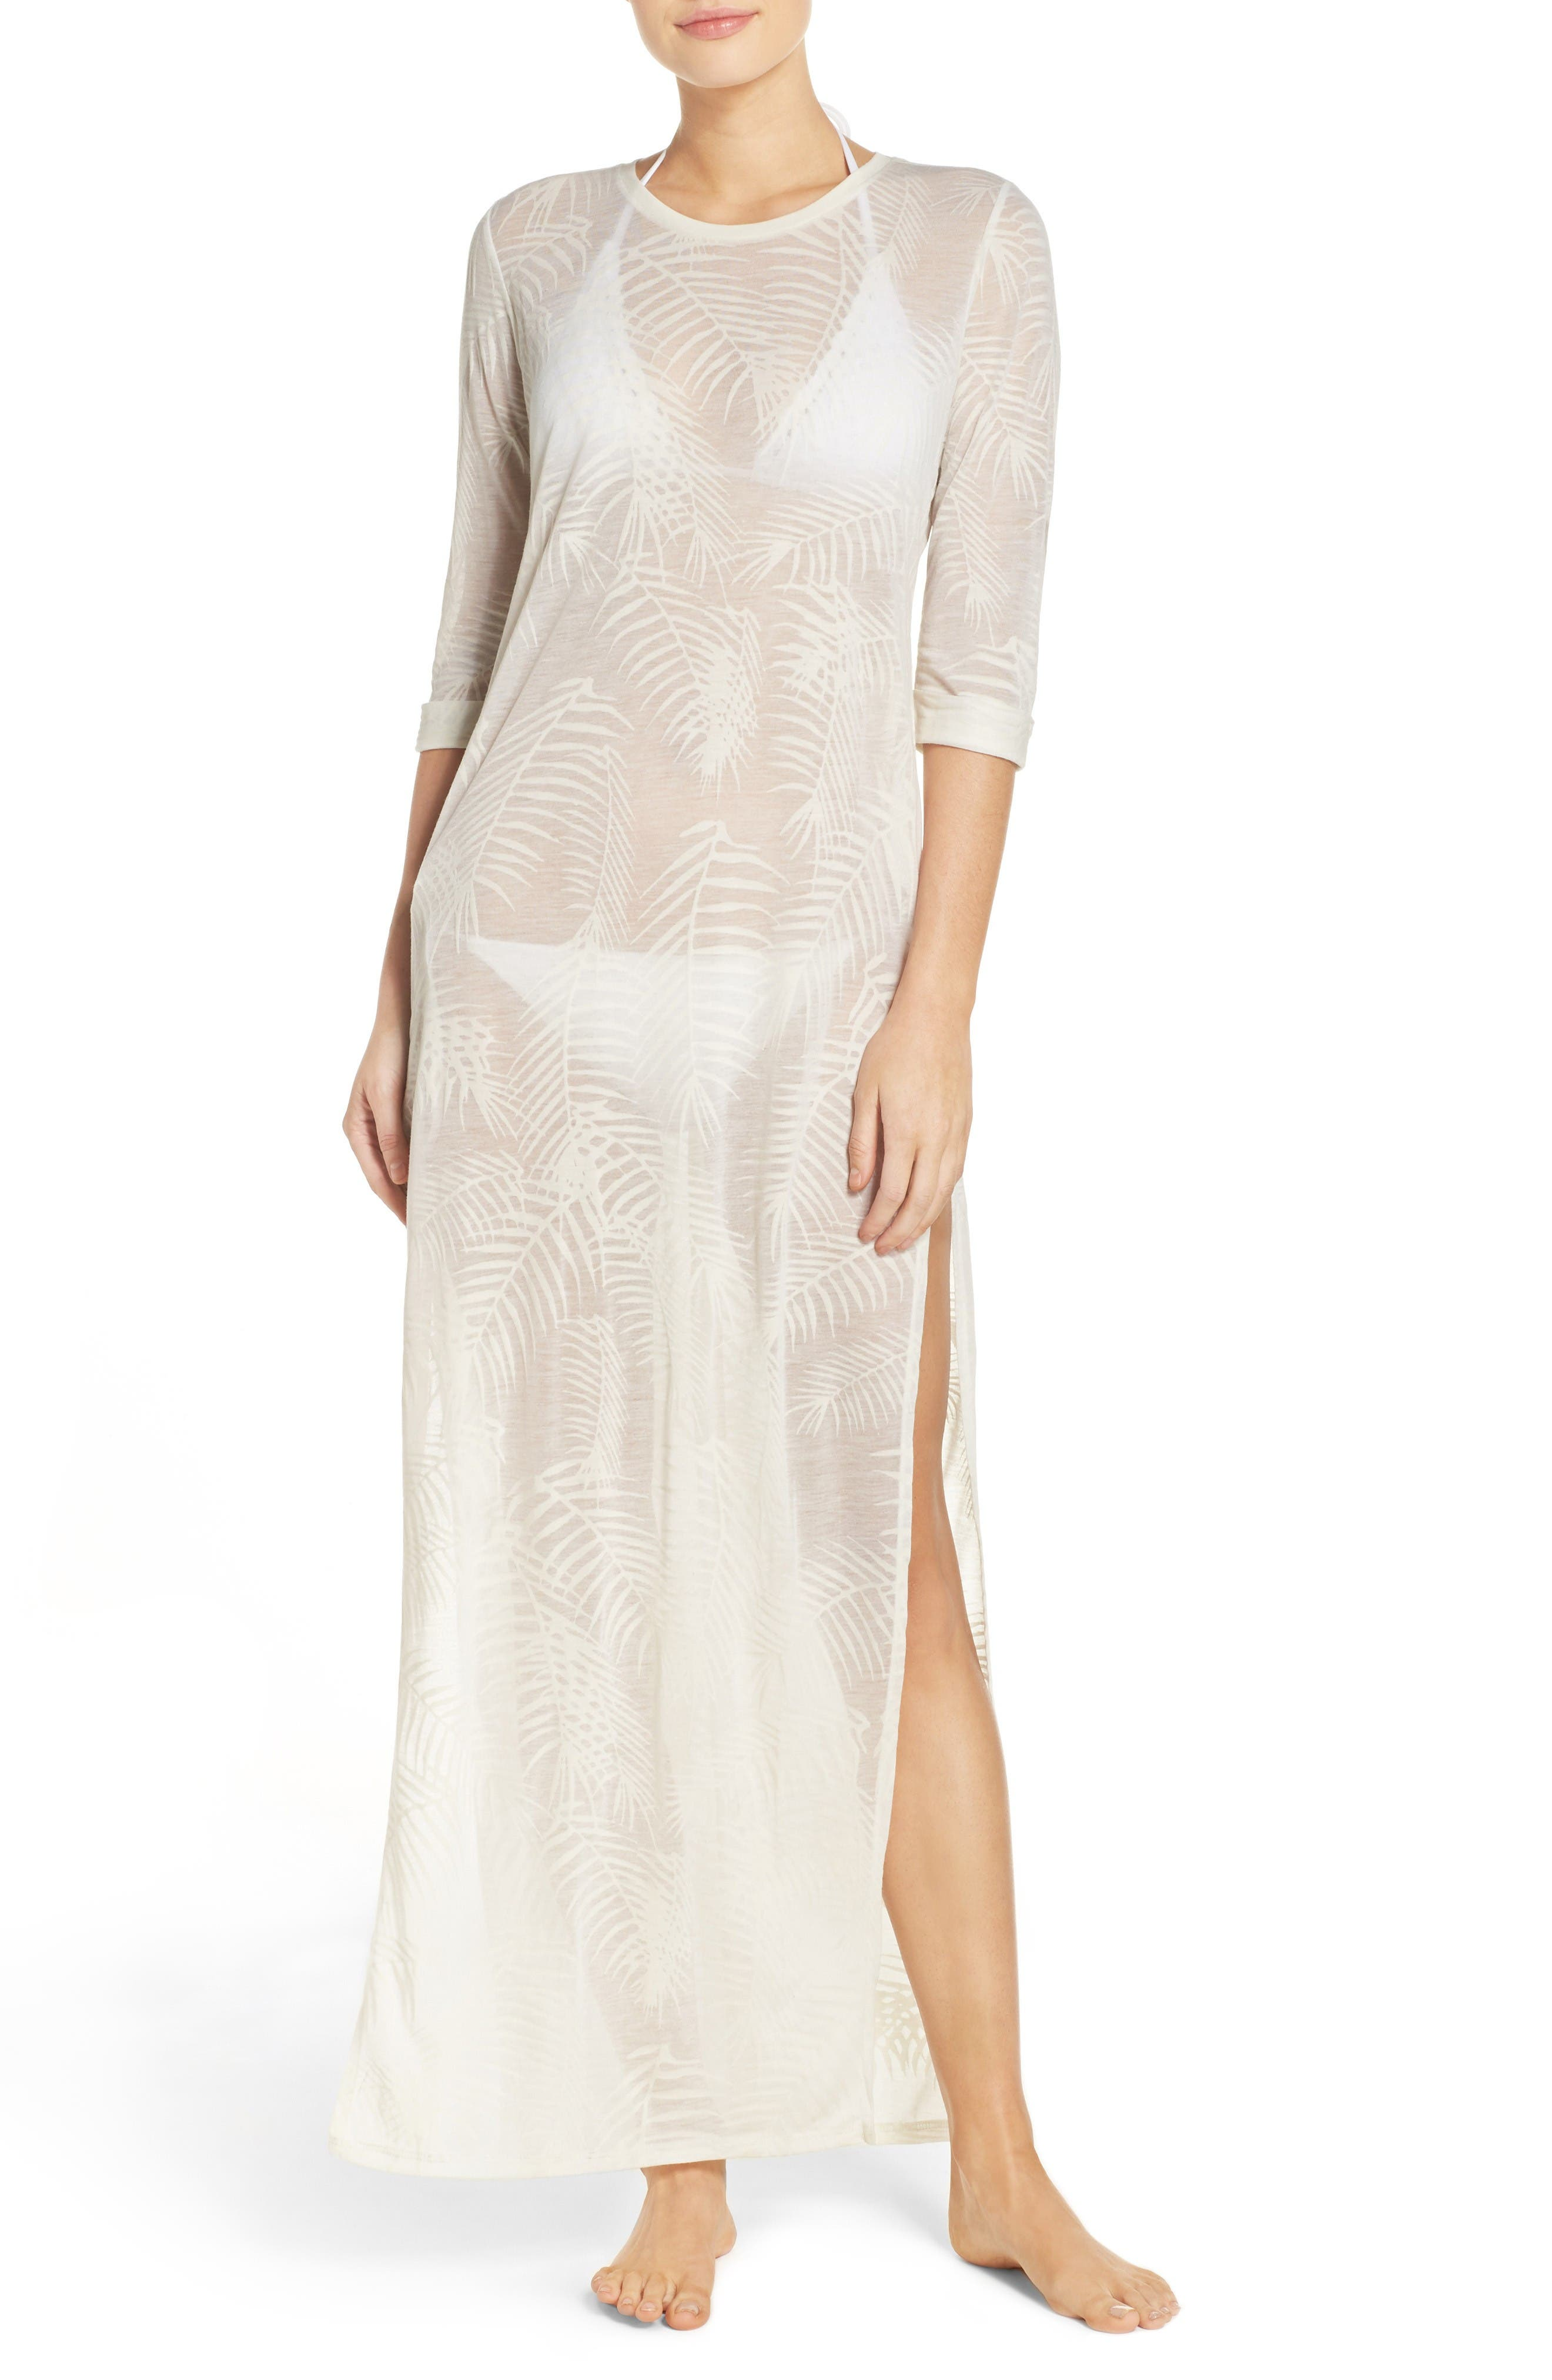 TAVIK Finley Cover-Up Maxi Dress